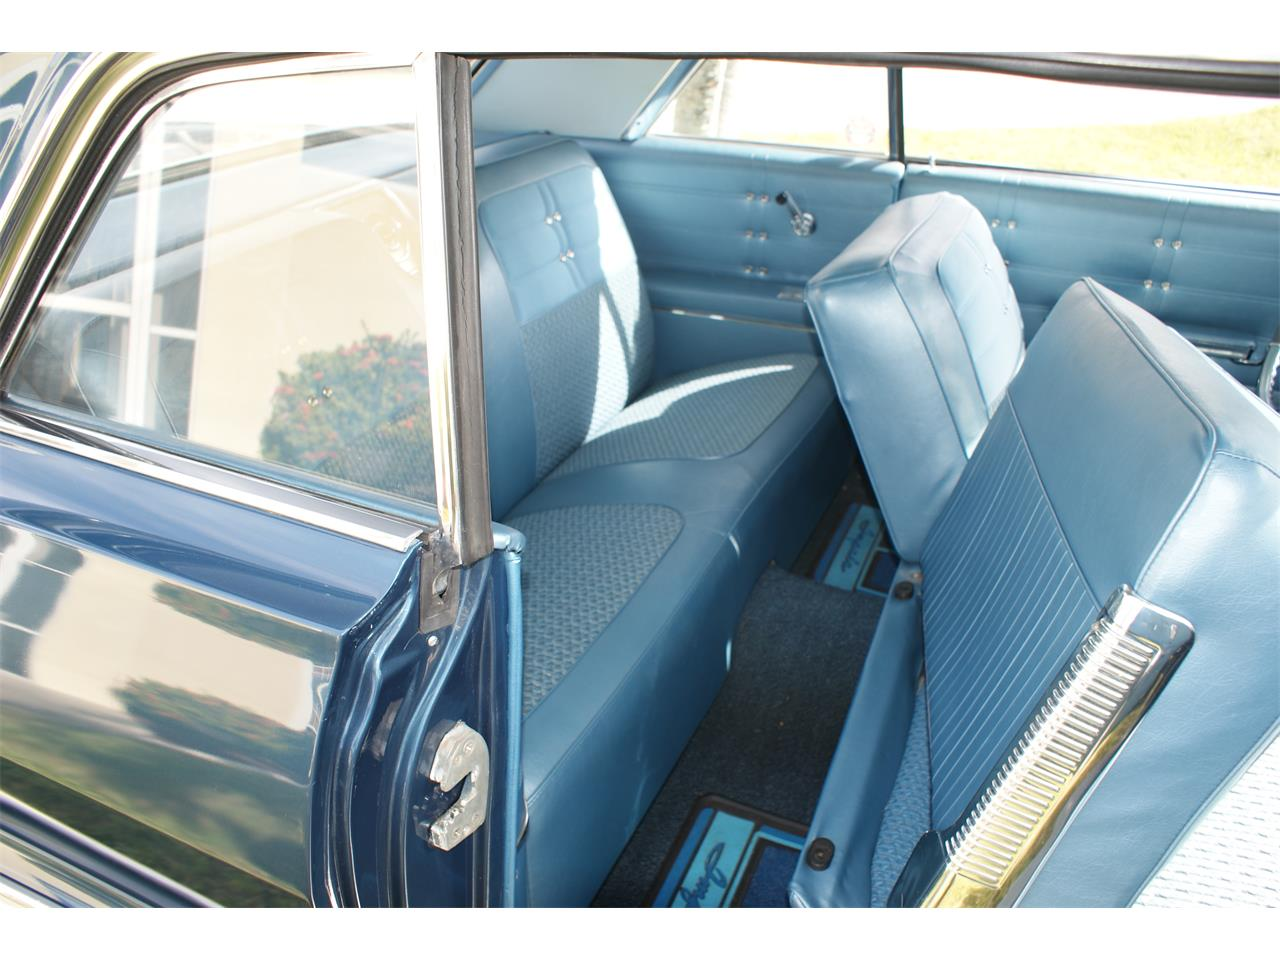 Large Picture of '63 Chevrolet Impala located in Florida Offered by a Private Seller - P4QR